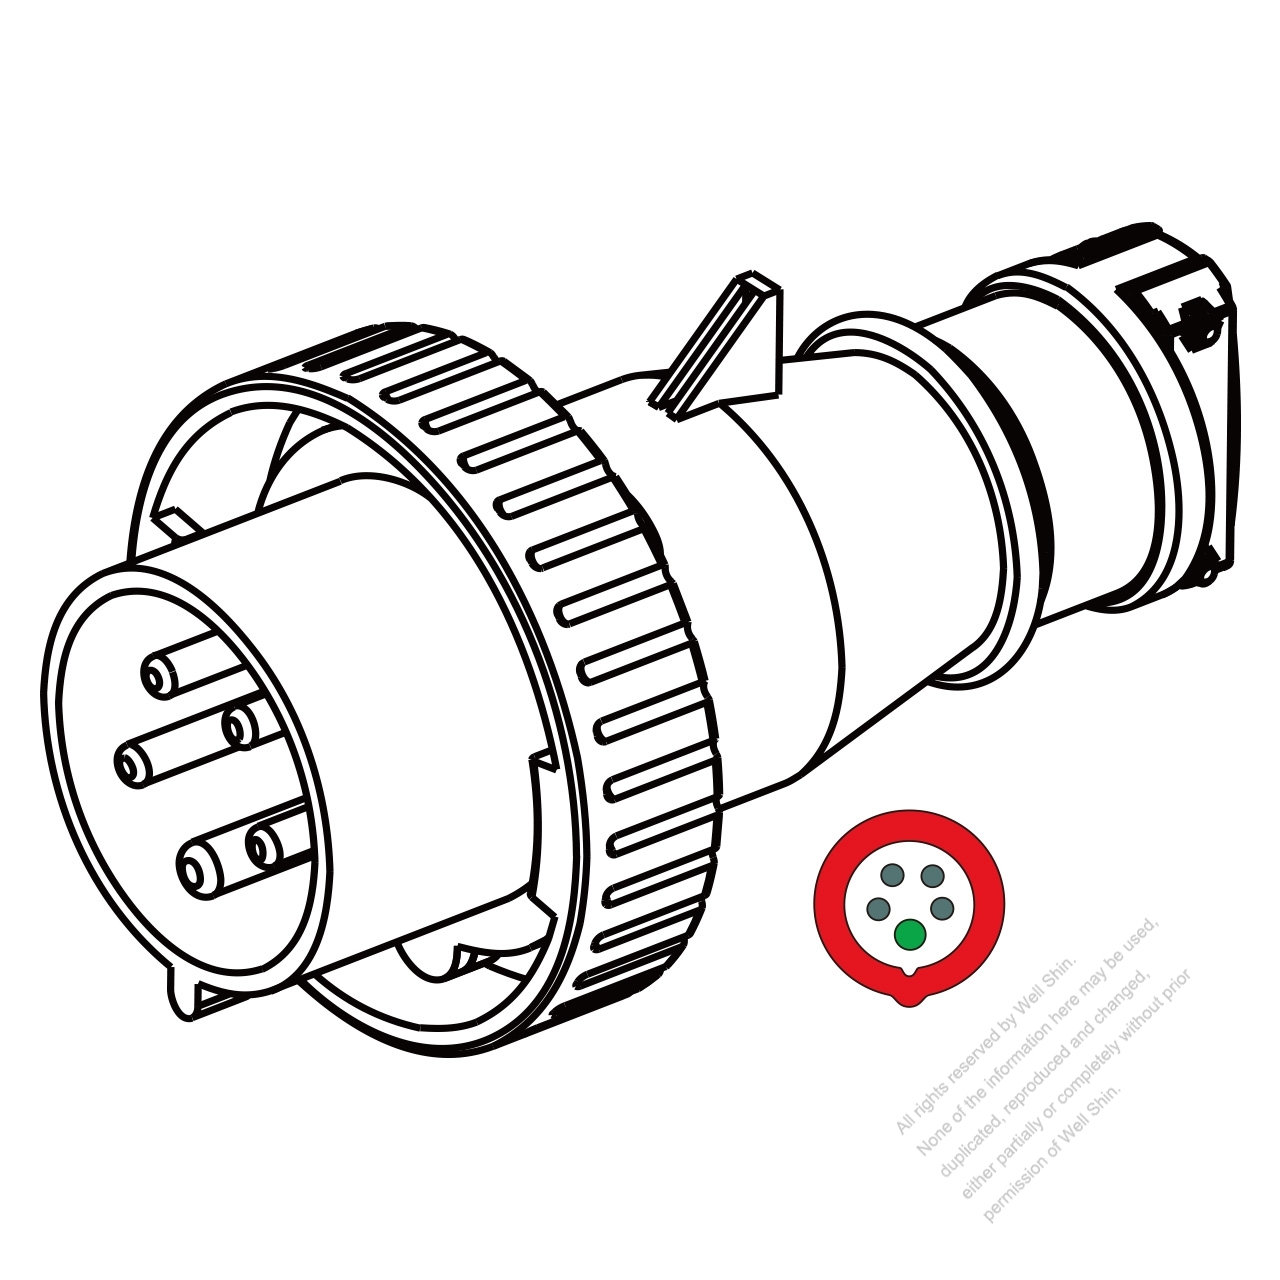 Iec 309 Plug 5 Pin 4p 5w Ip 67 Watertight Plugs 32a 220v